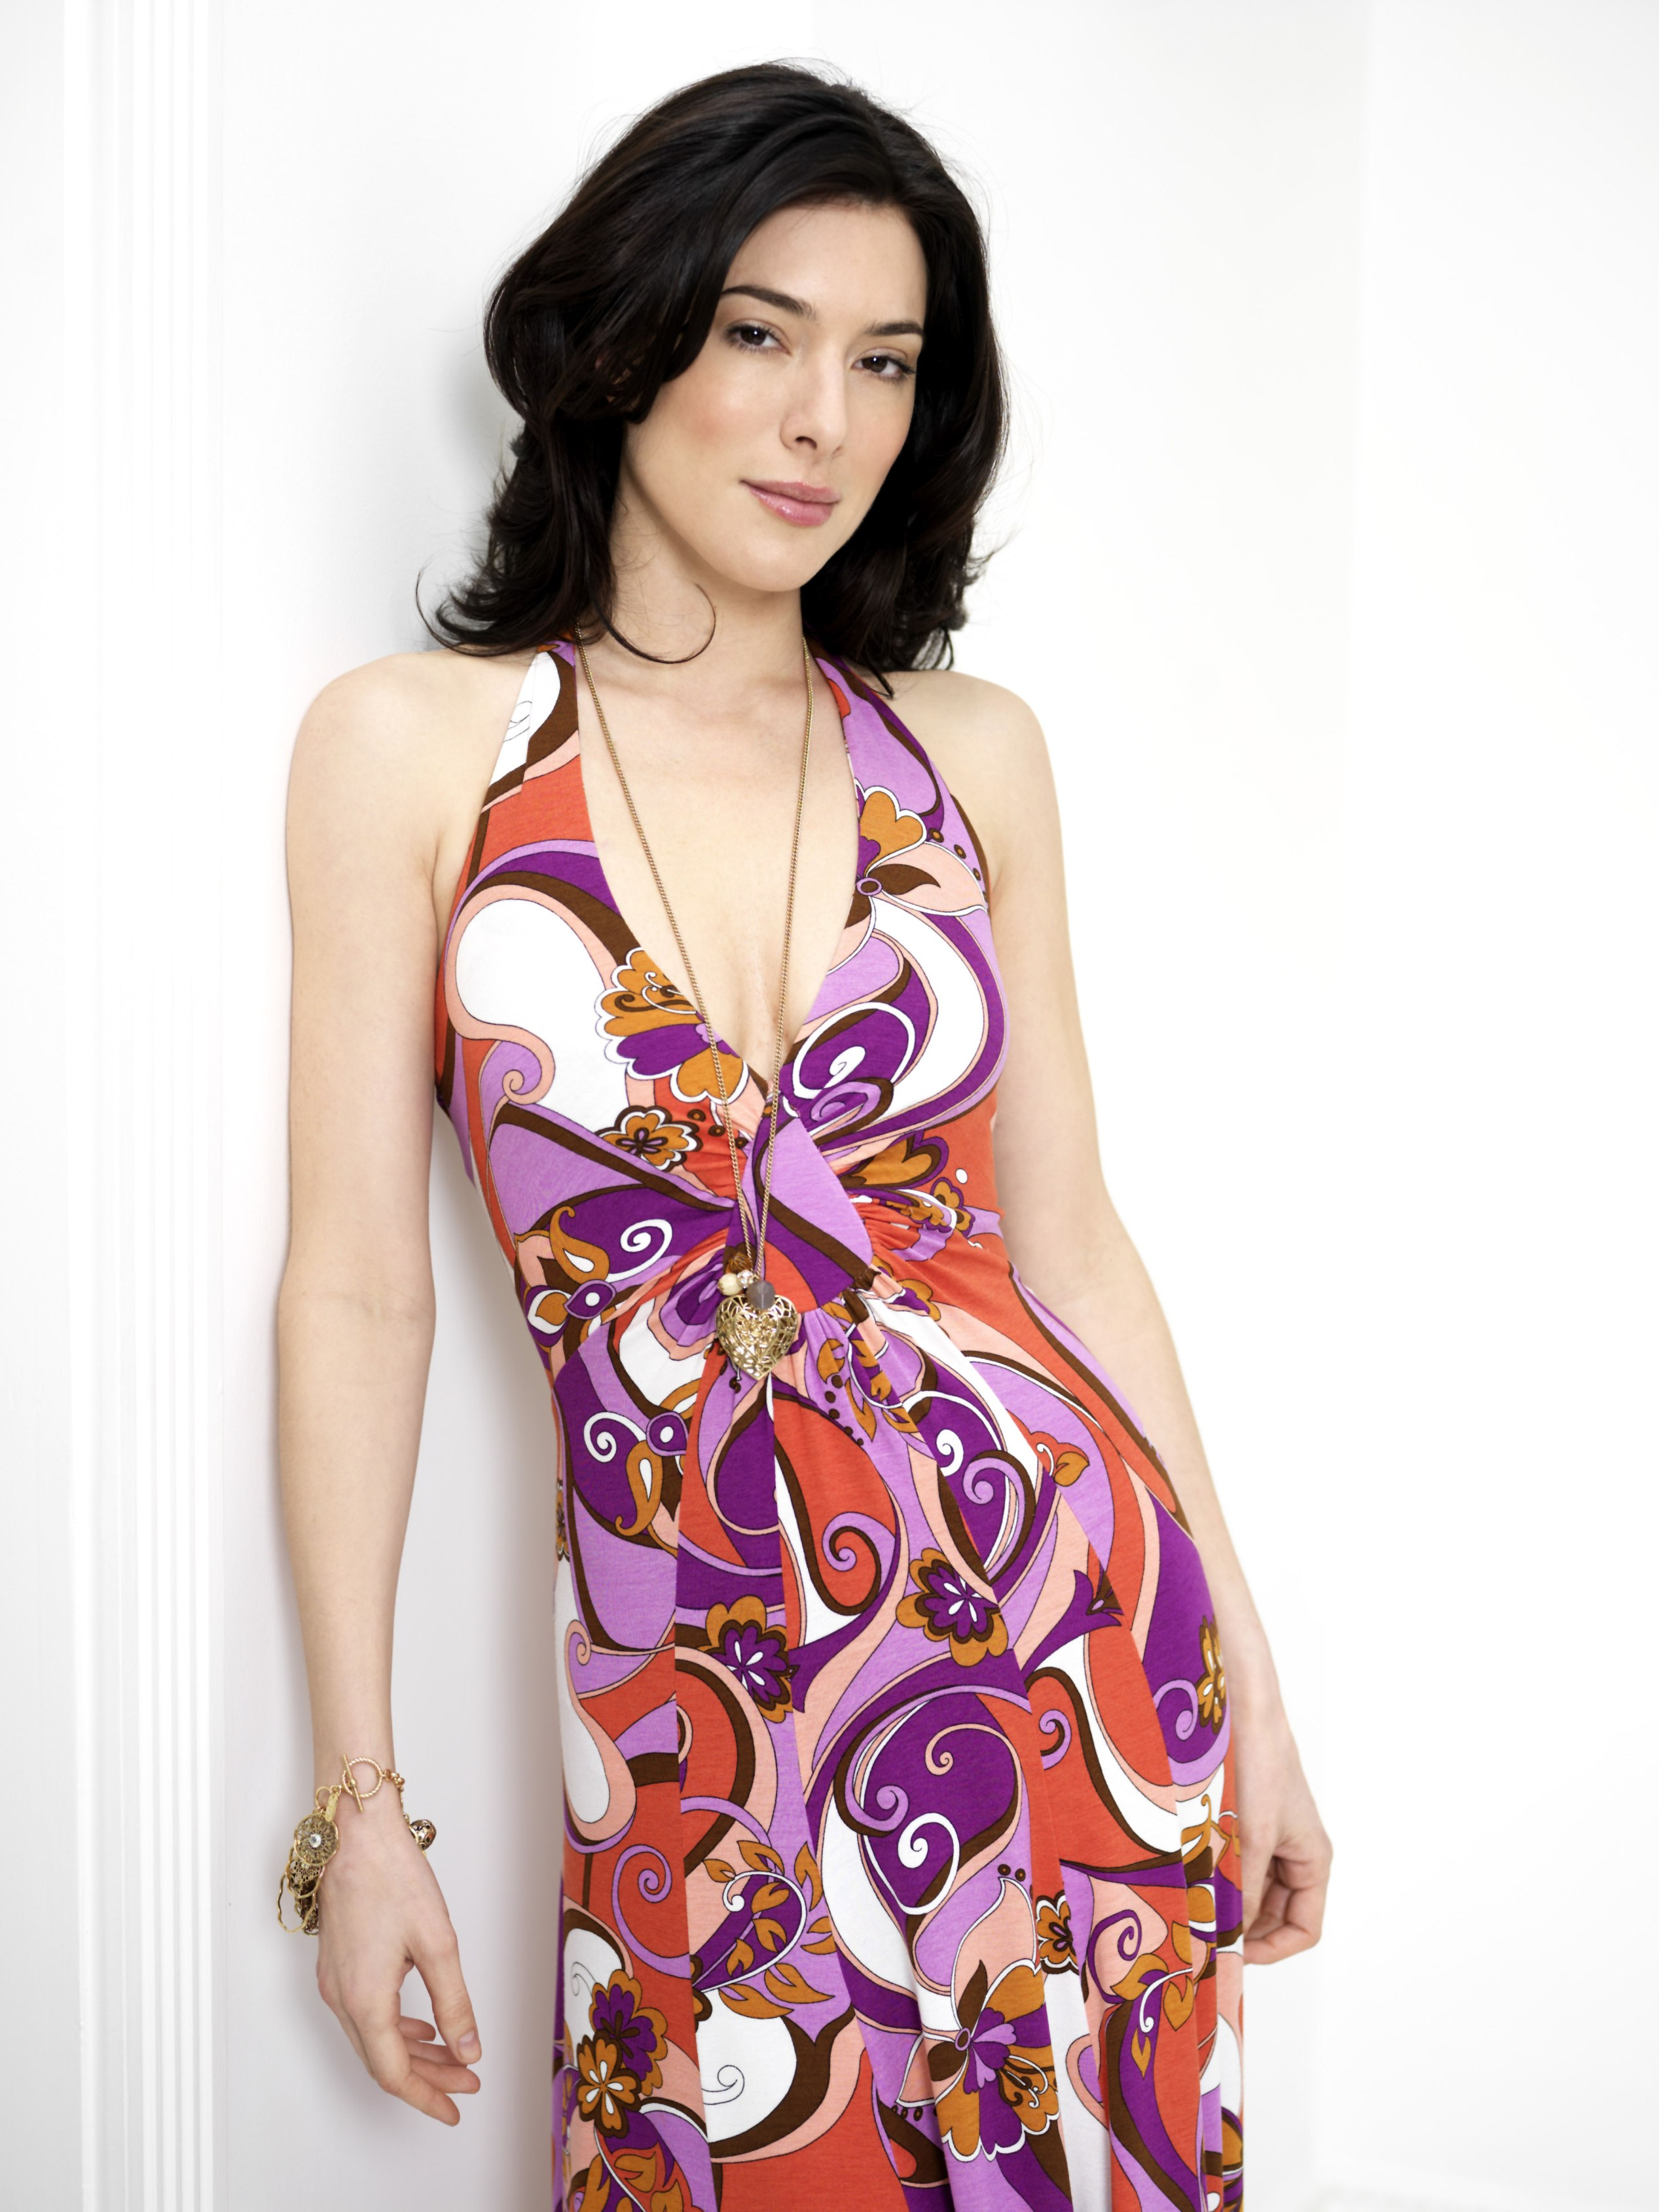 jaime murray tennis